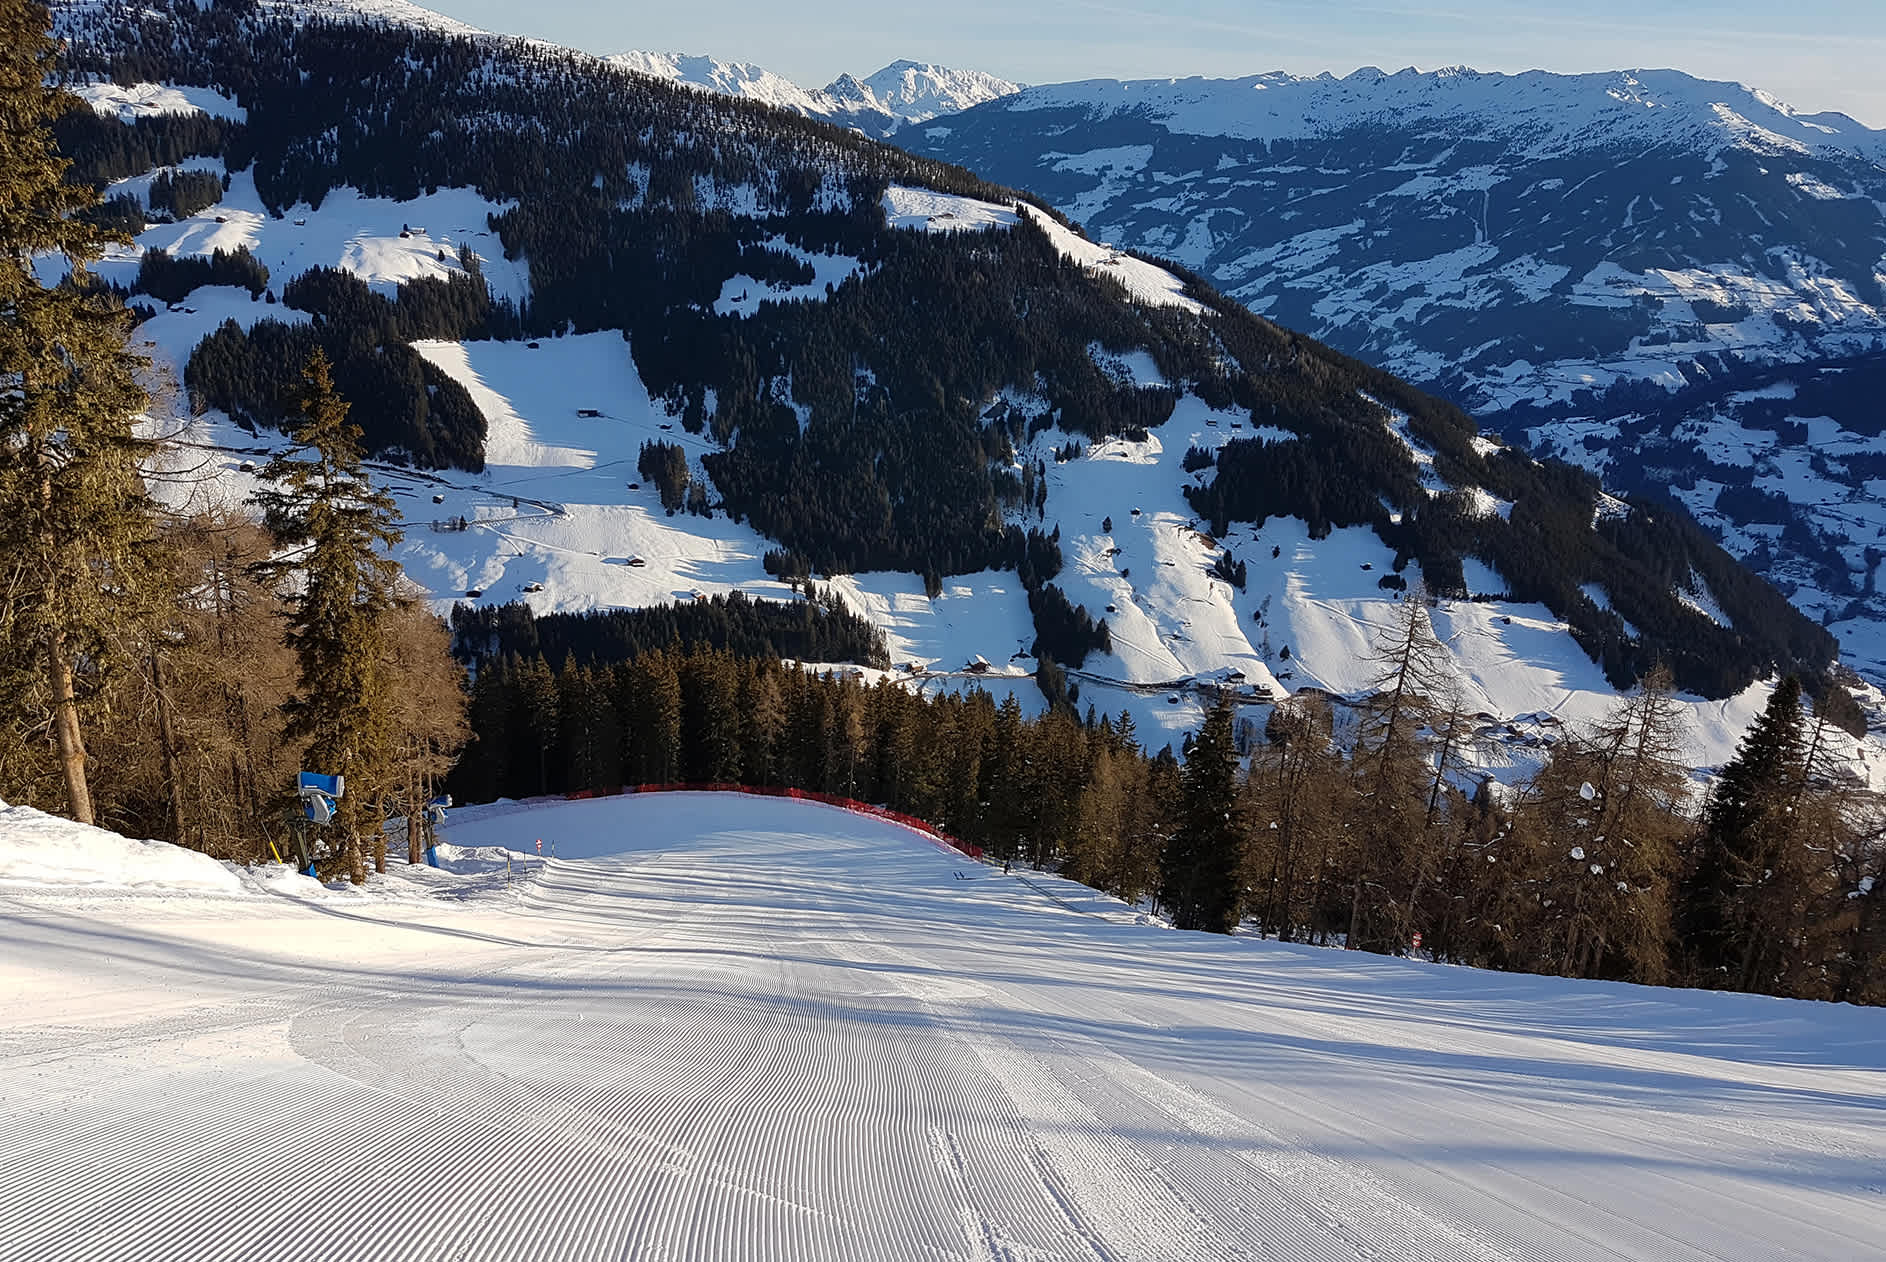 Video recording and racy piste pleasure in Mayrhofen